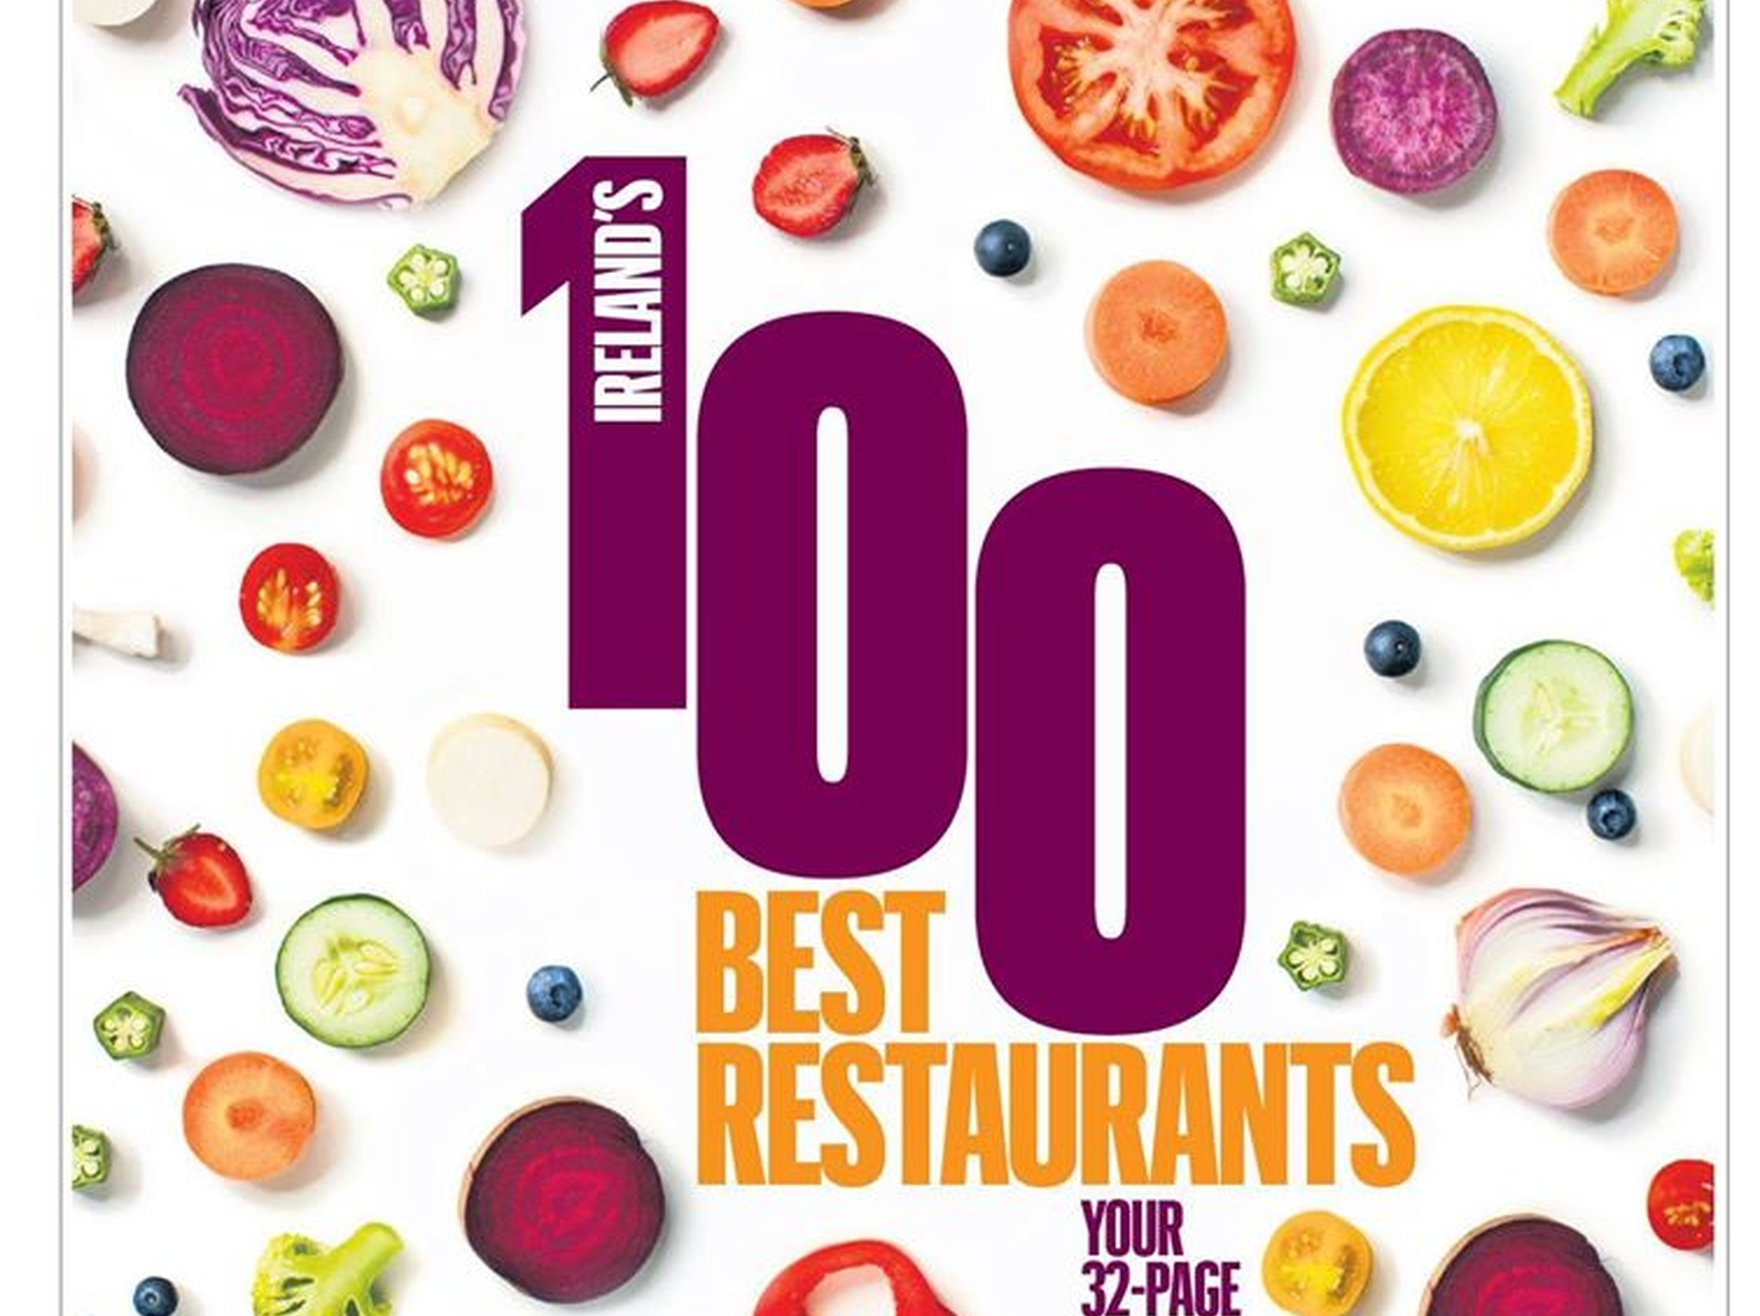 Top 100 restaurants In Ireland | James St | Sunday Times